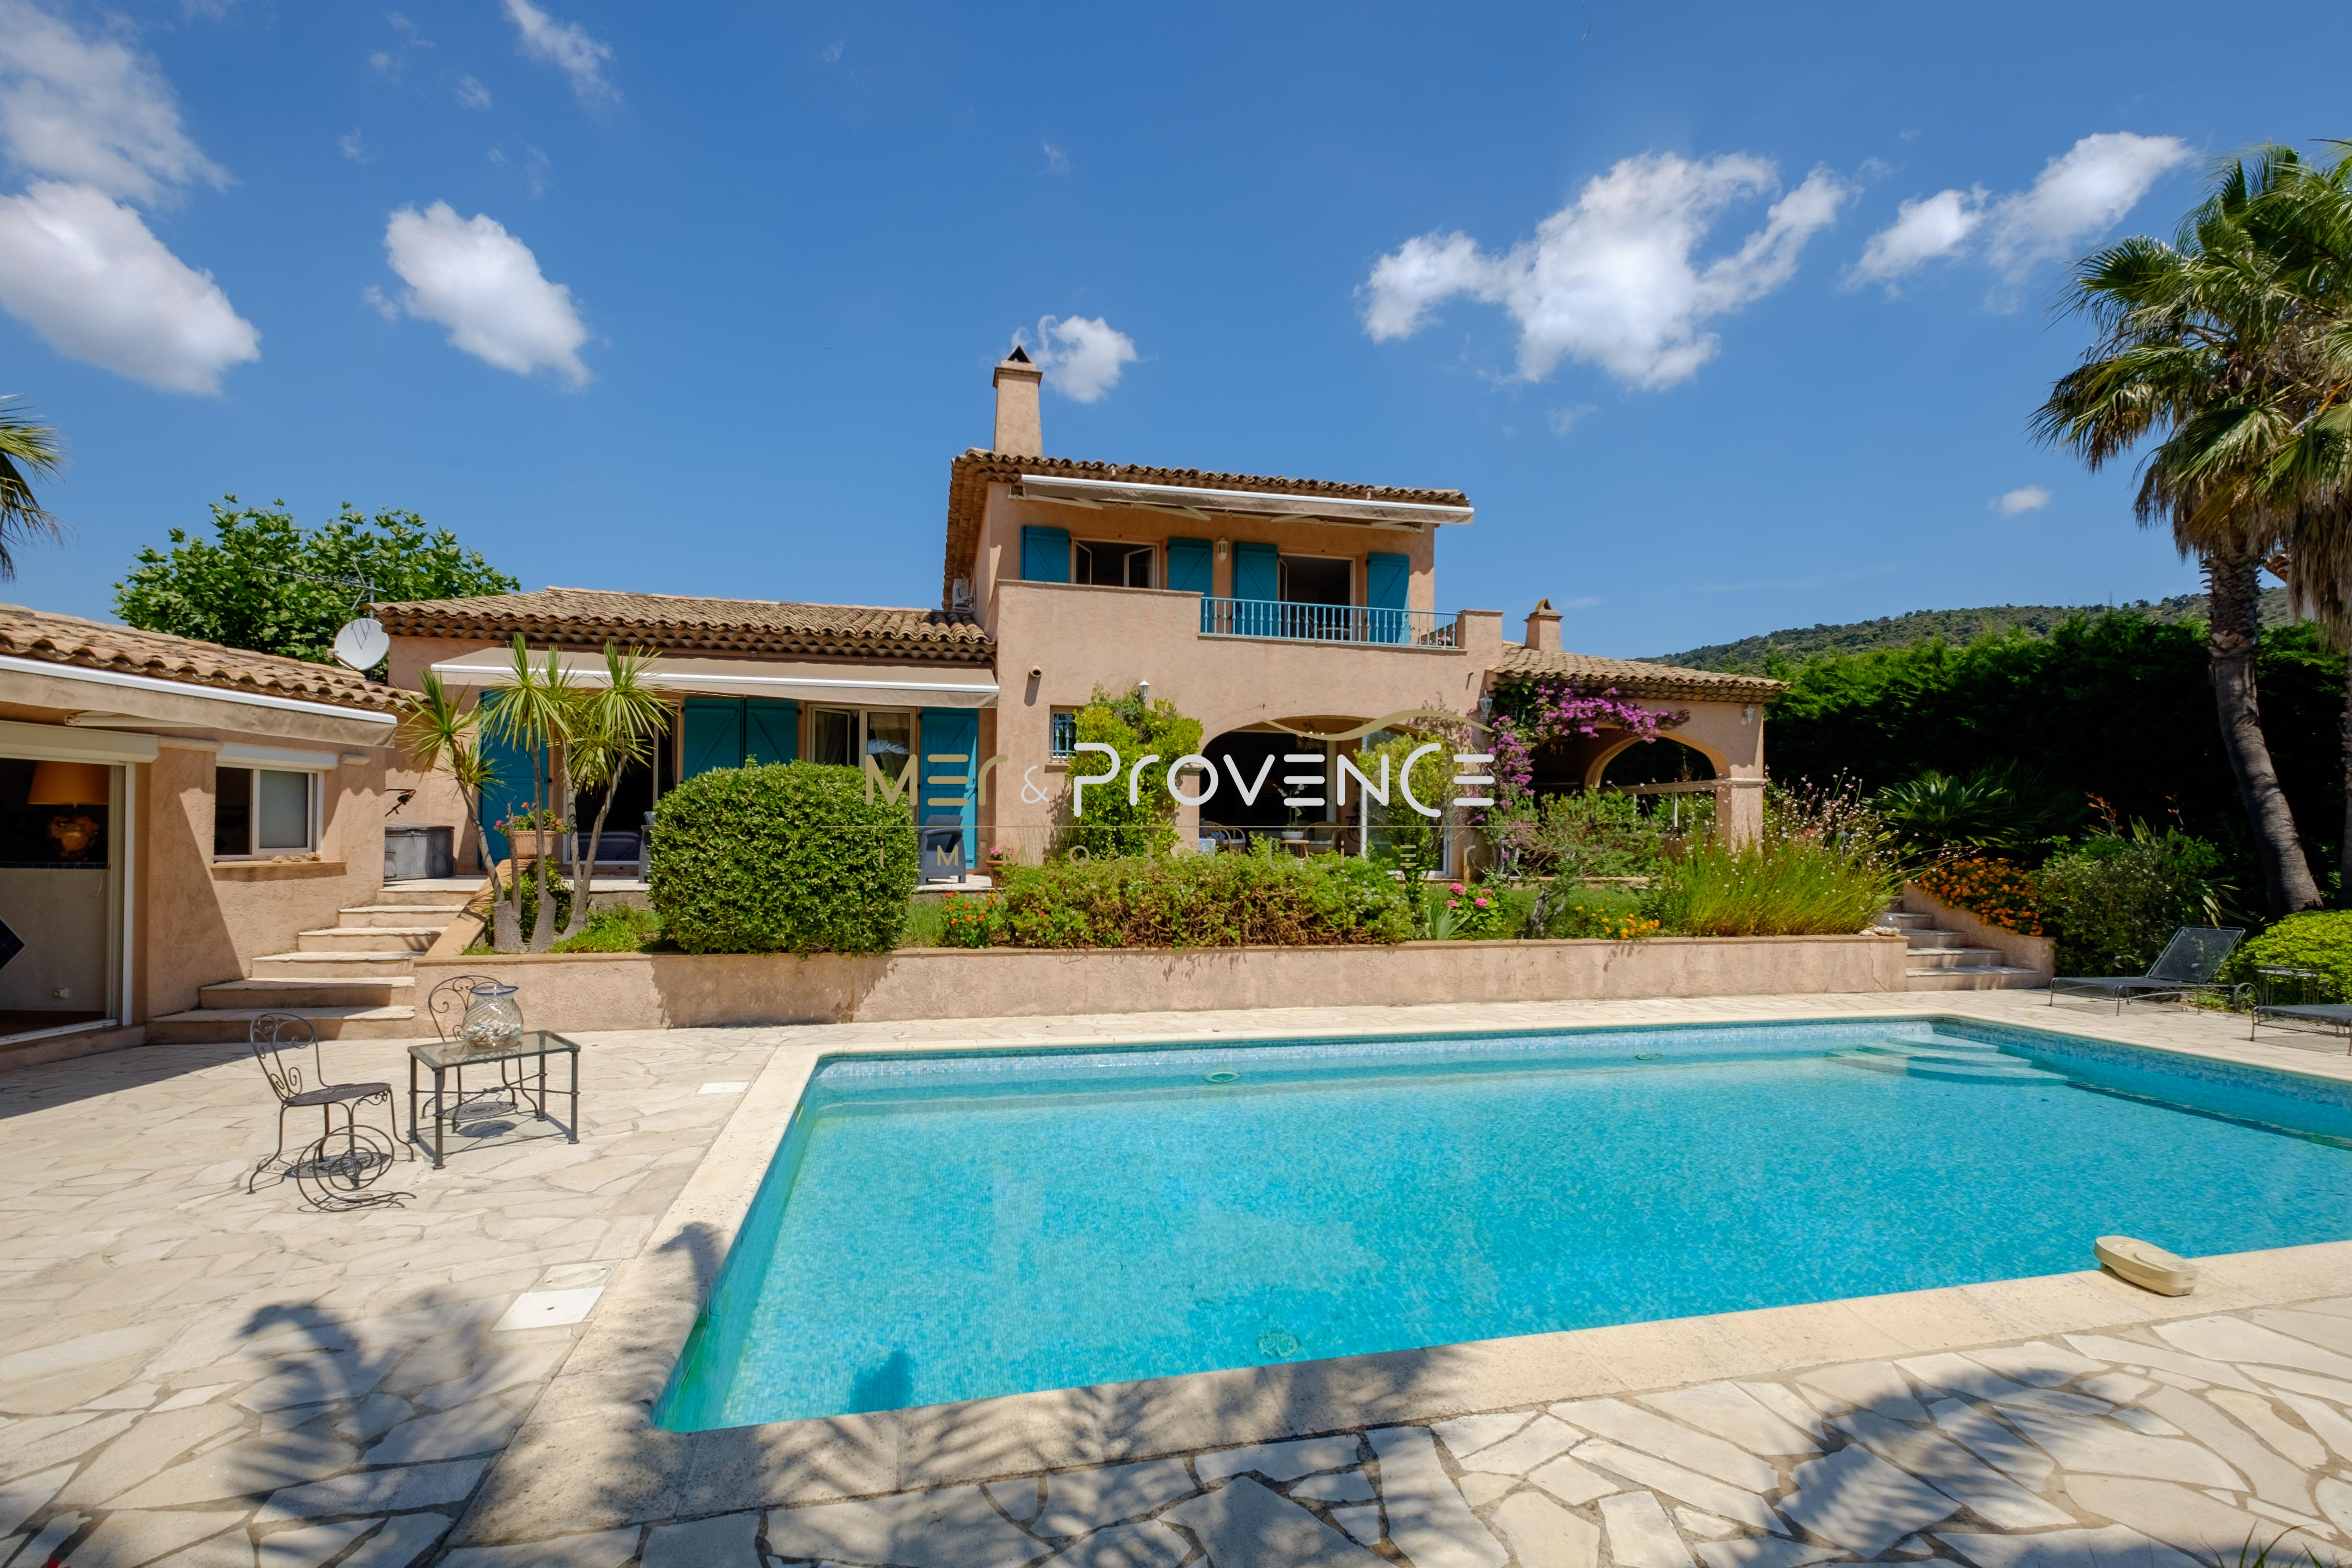 3 bed House - Villa For Sale in St Tropez area,